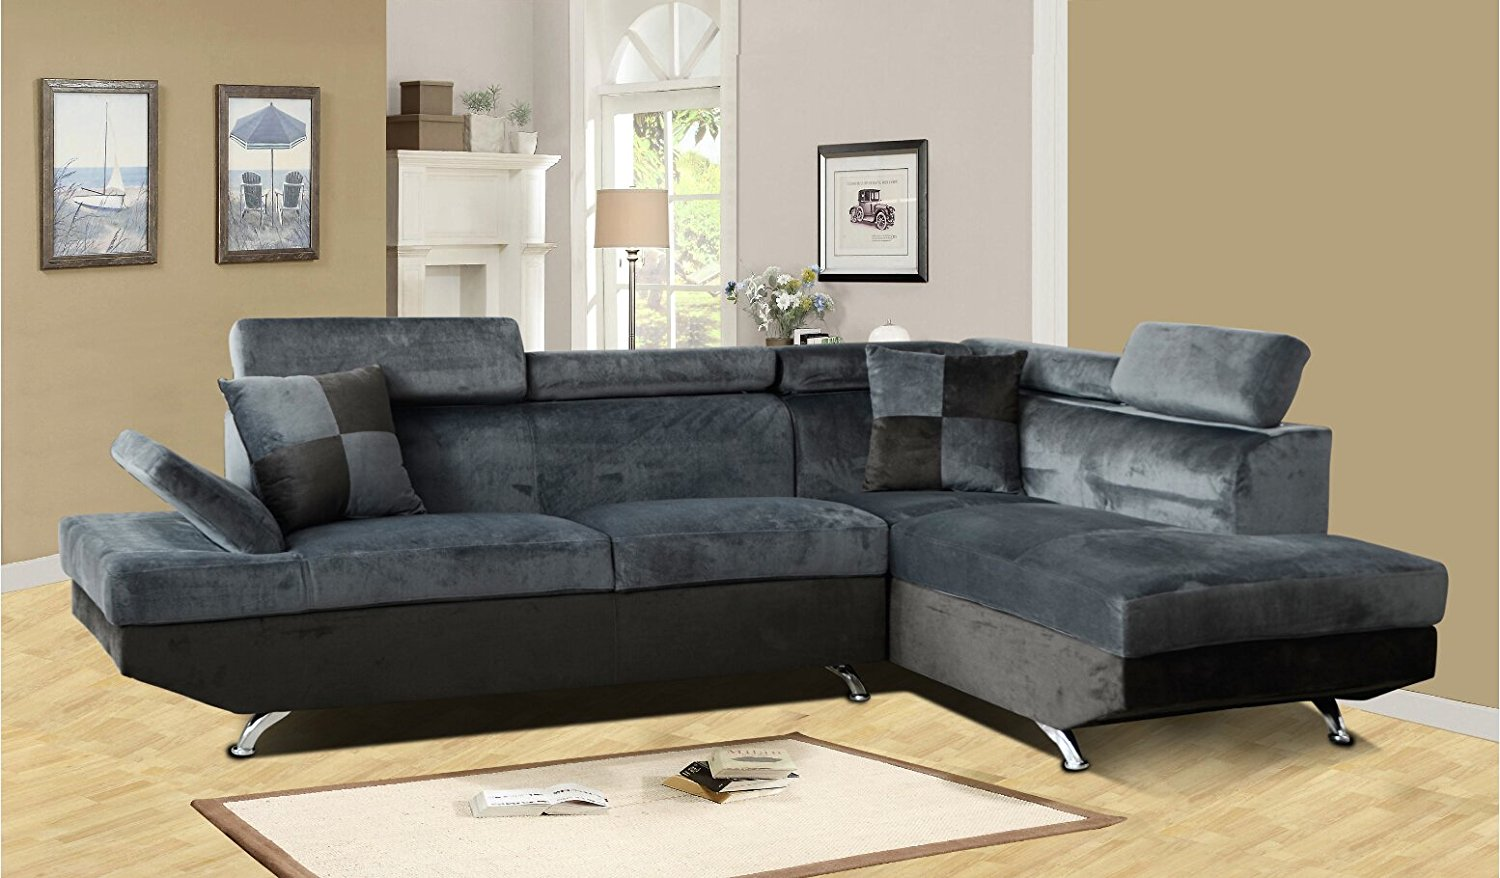 Beverly Furniture F2806B-2PC-GY 2 Piece Microfiber & Faux Leather Left Facing Sectional Sofa Set, Gray